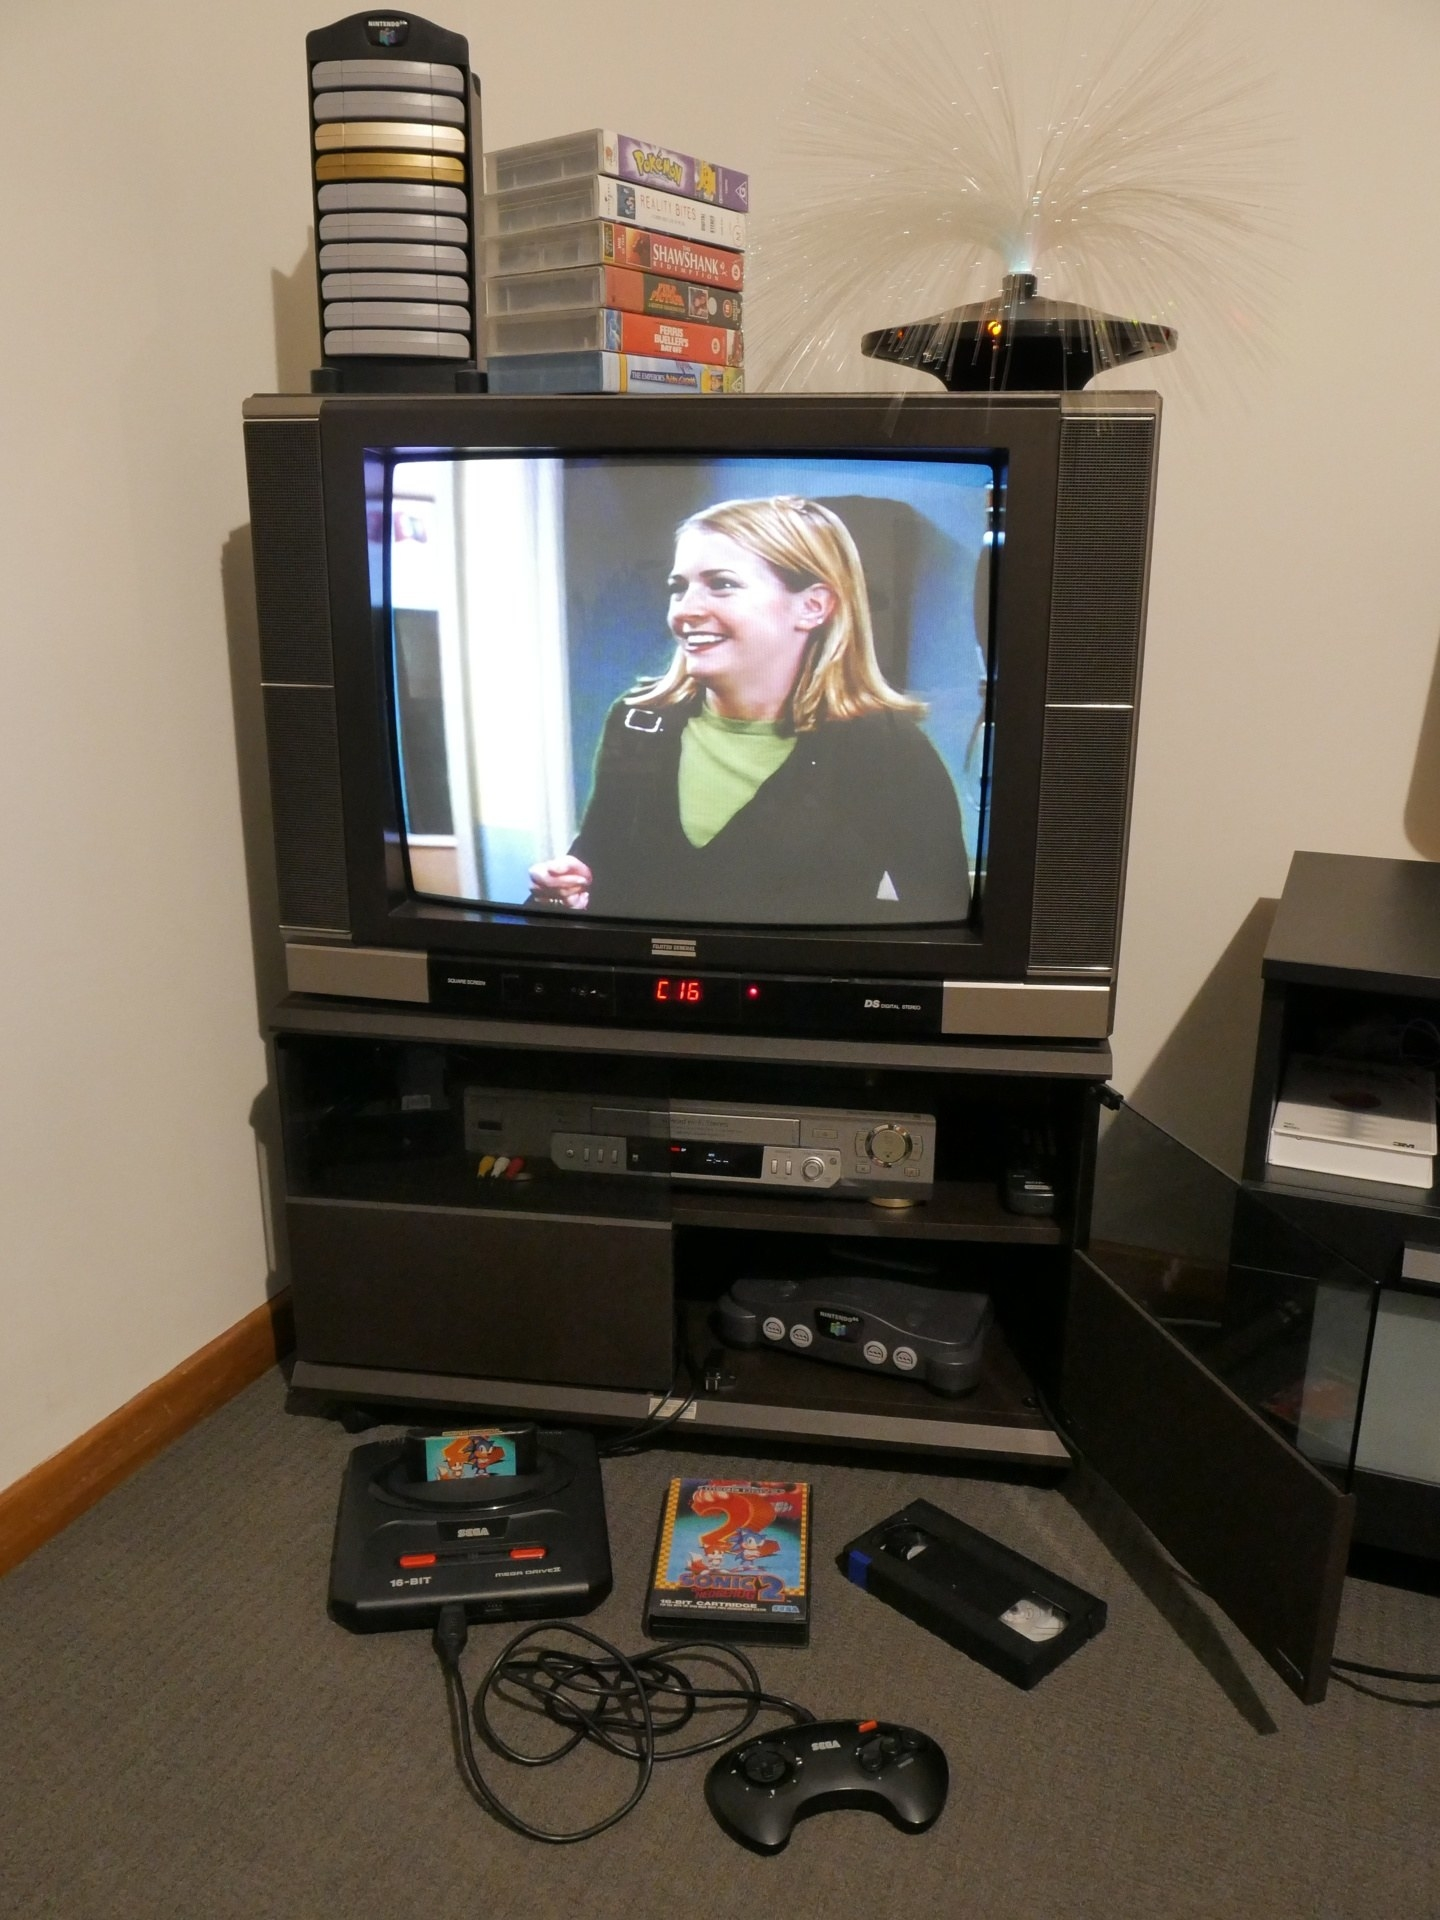 TV on cabinet with an old '90s TV on it and playing Sabrina the Teenage Witch